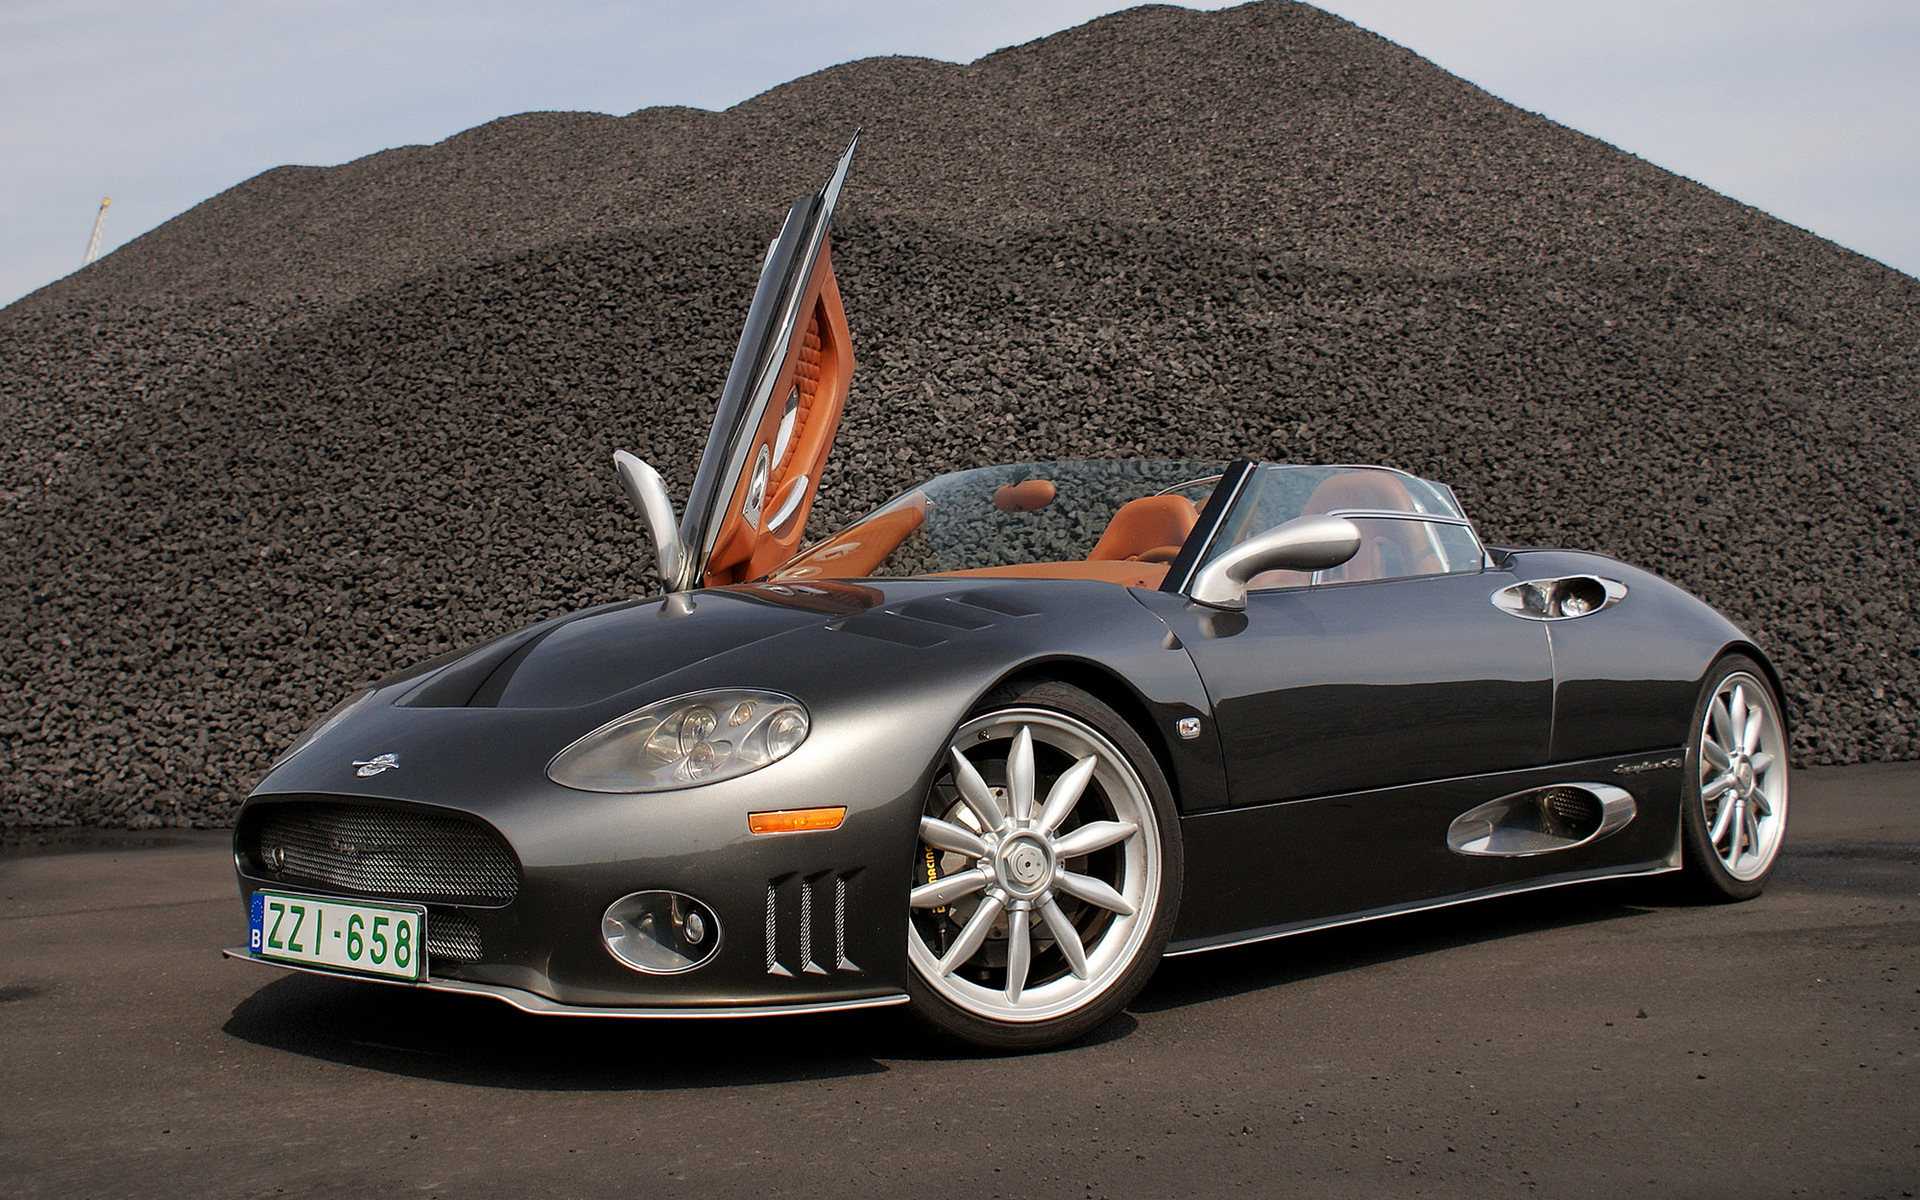 Spyker C Spyder Car Wallpaper on 2019 Dodge Ram